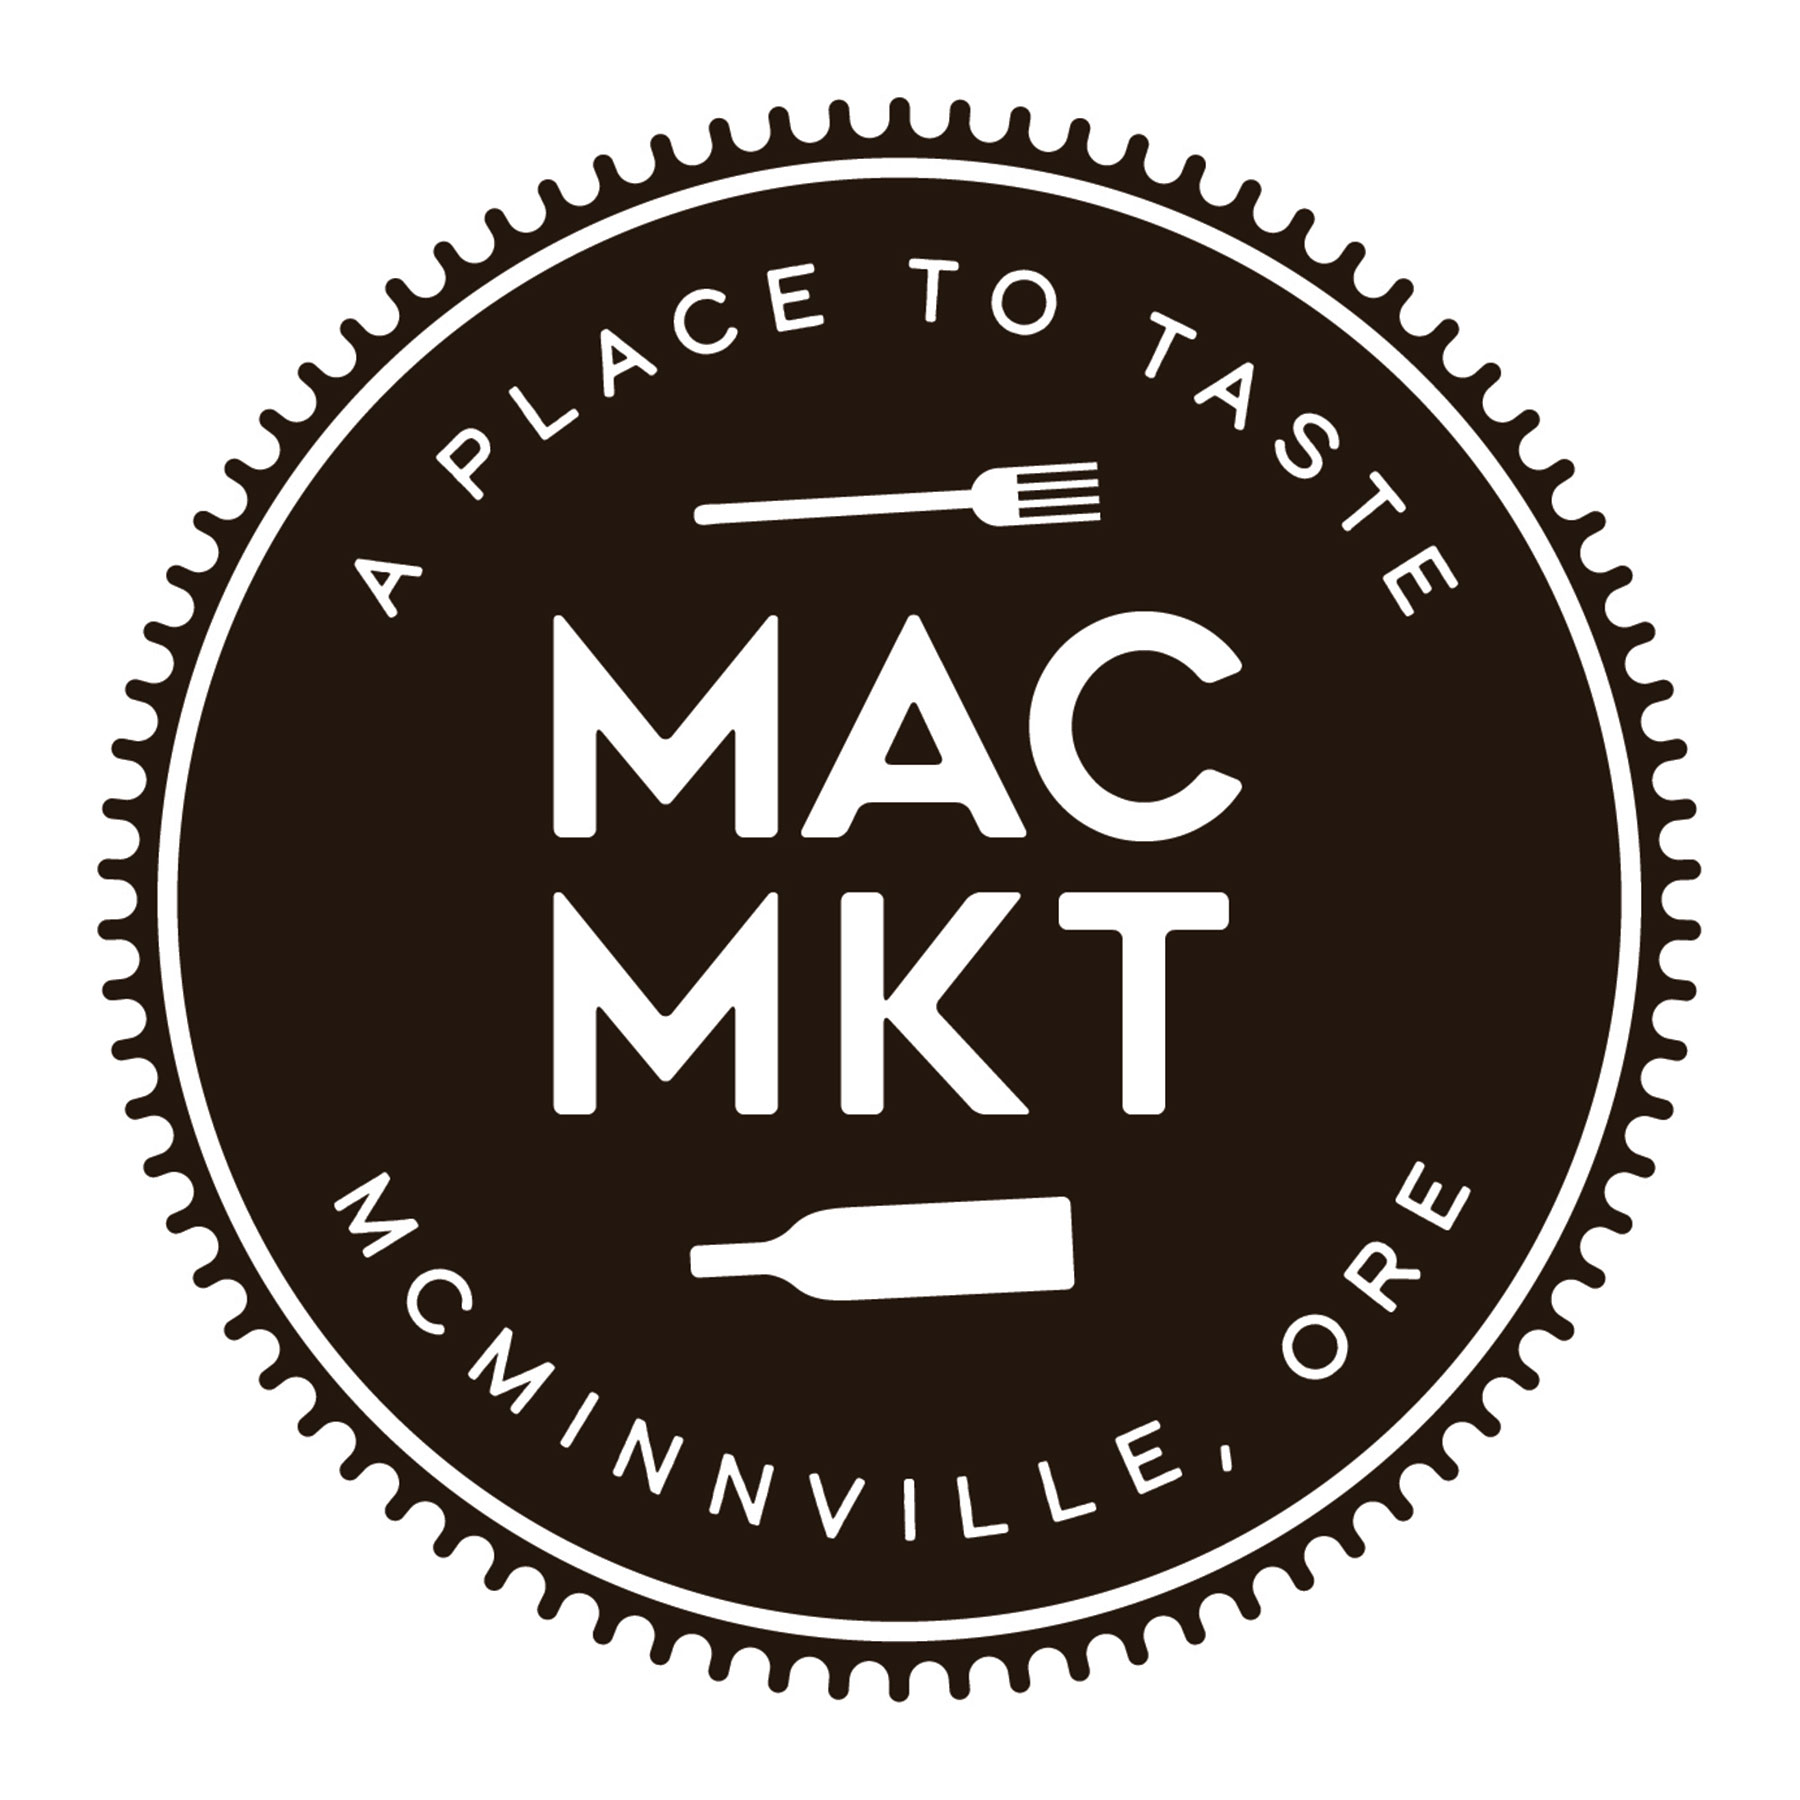 Mac Market McMinnville Oregon